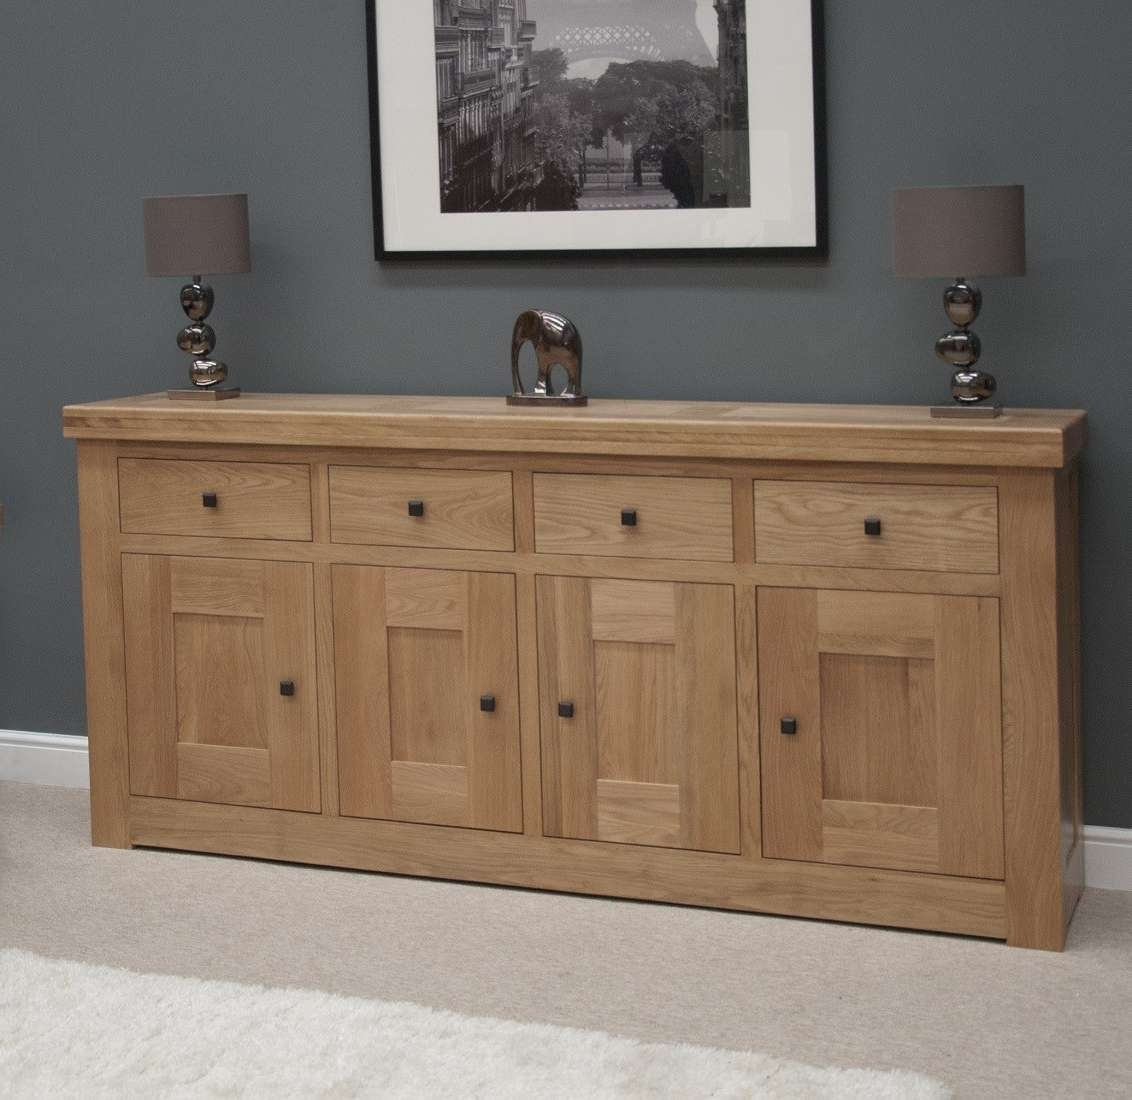 French Bordeaux Oak Extra Large 4 Door Sideboard | Oak Furniture Uk For Solid Oak Sideboards (View 7 of 20)